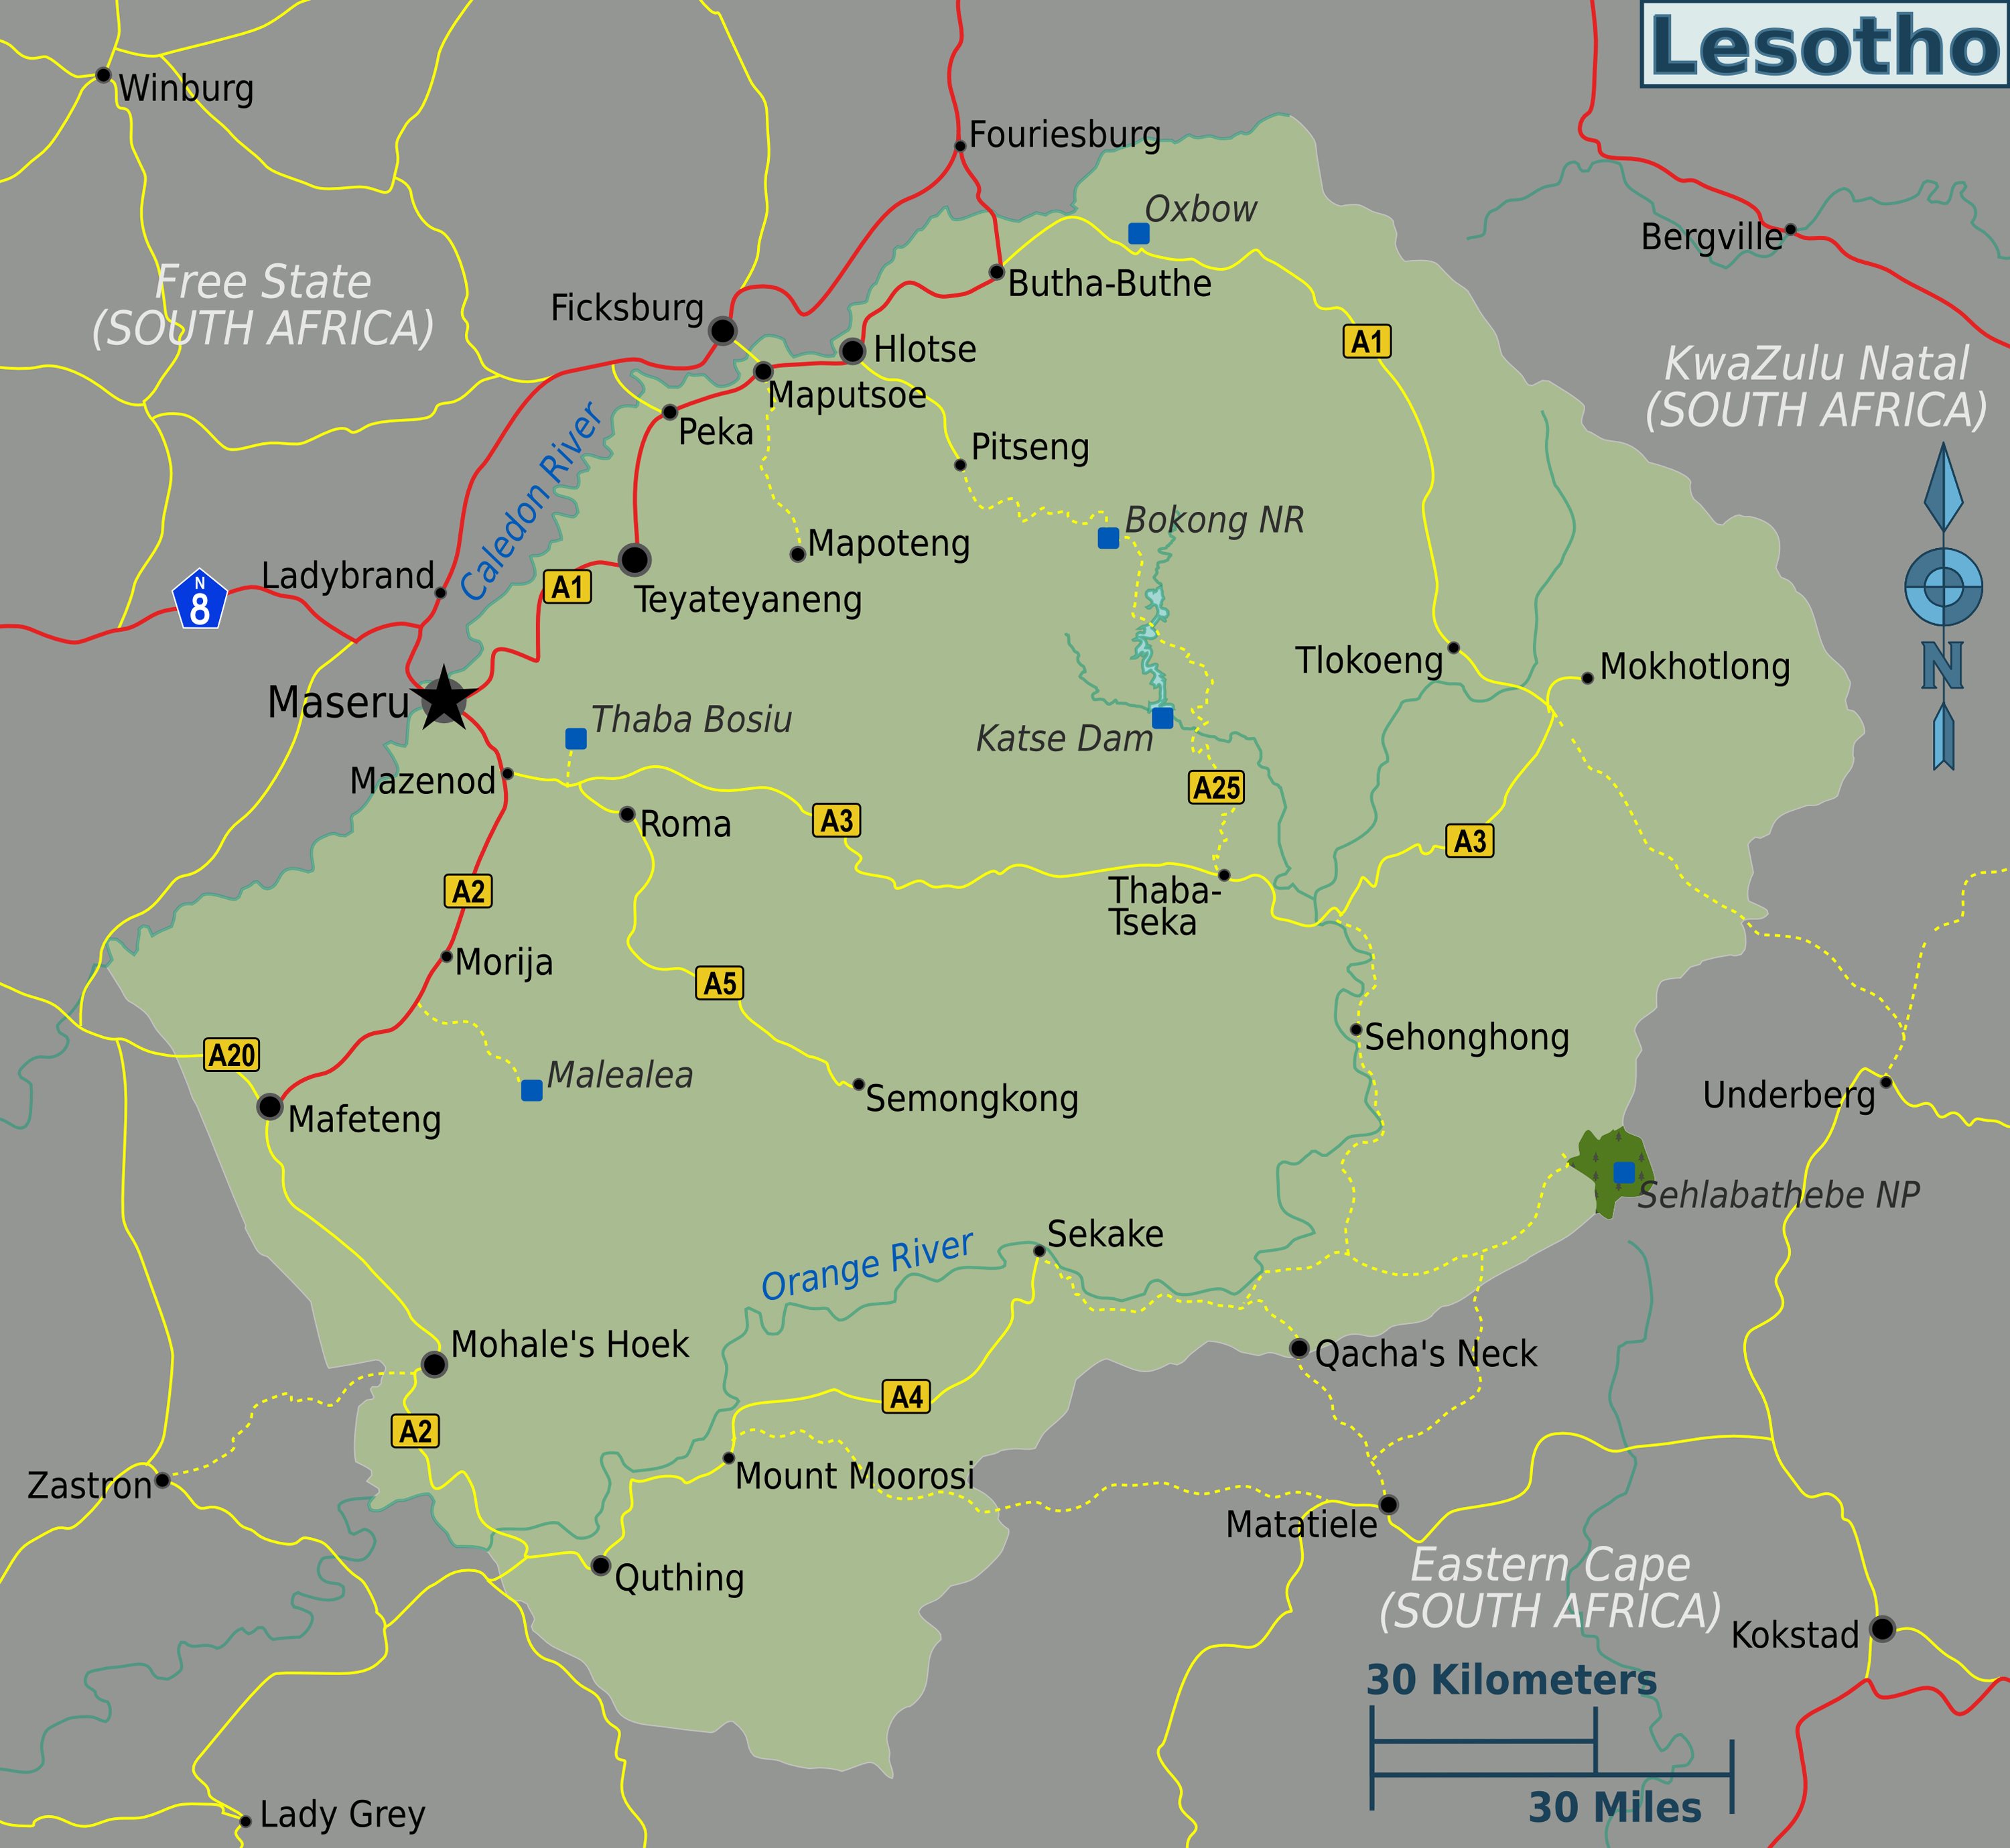 Full Political Map Of Lesotho Lesotho Full Political Map - Lesotho maps with countries